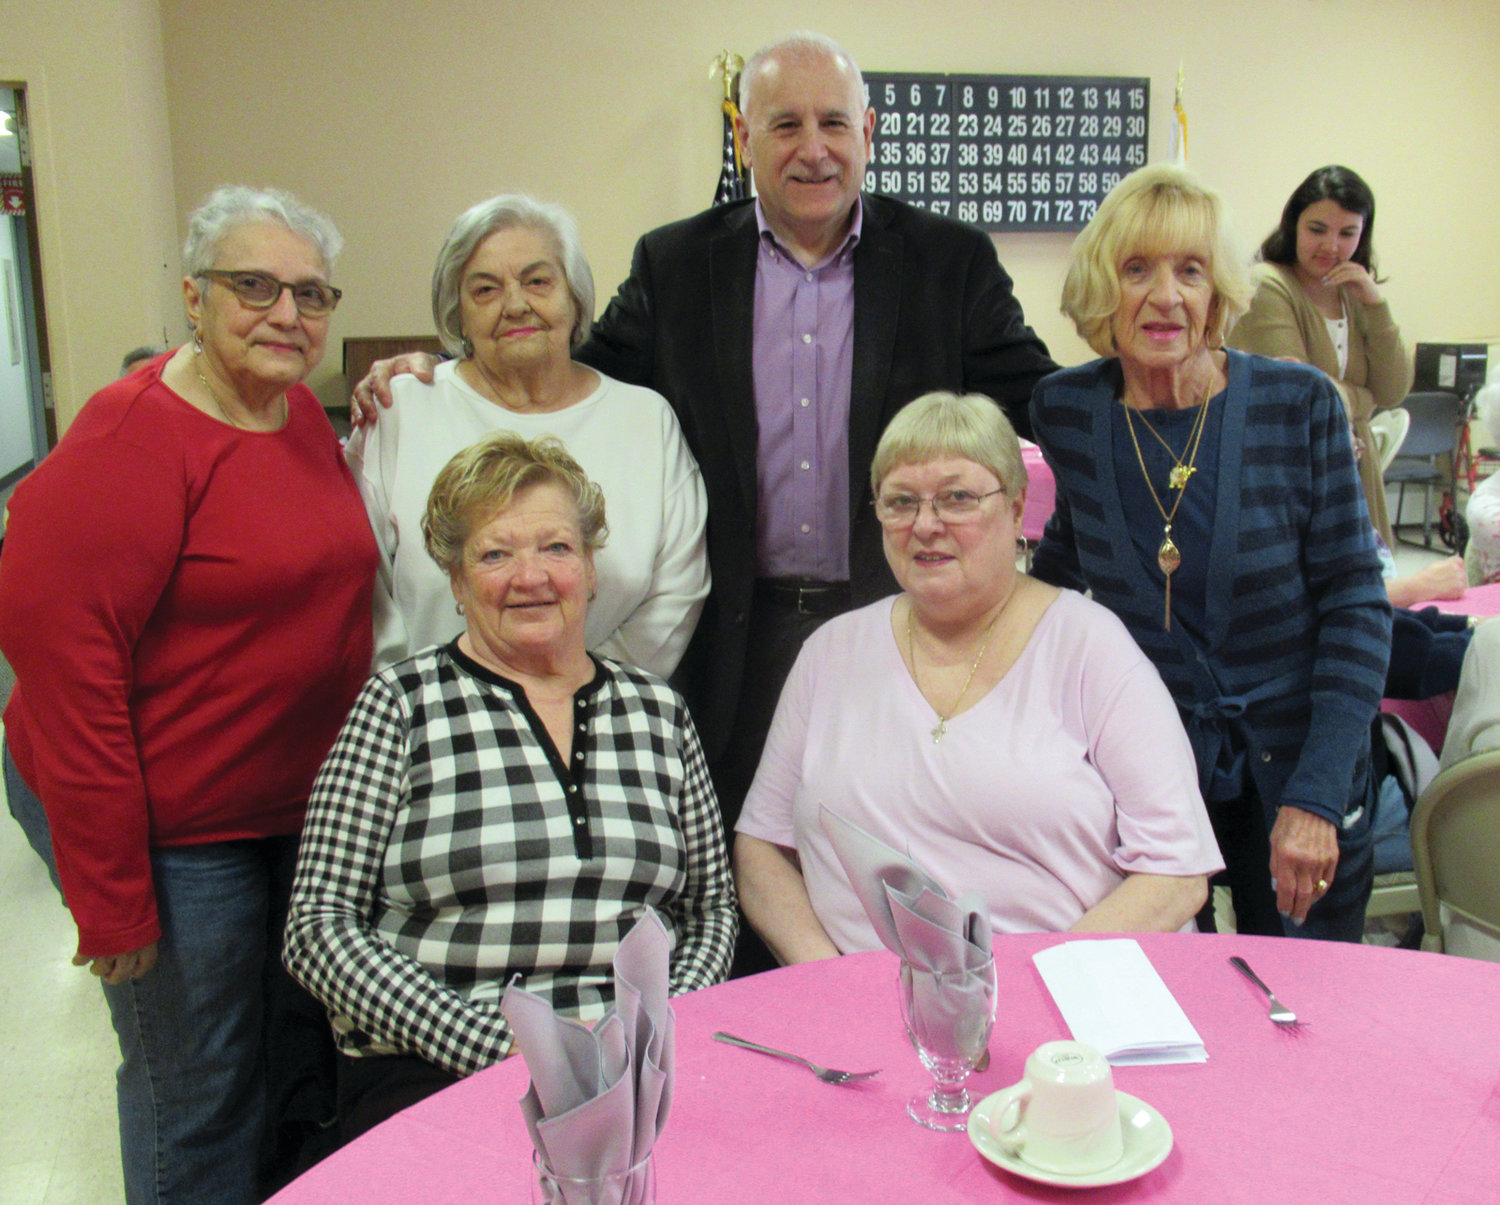 WARM WELCOME: Johnston Mayor Joseph Polisena received a warm welcome from members of the Pell Manor Tenants Association at last week's May Breakfast. The mayor is joined by, in front from left, Martha Church and a guest, and back from left, Anna DePasquale, Anna Murphy and Marie Andrews.